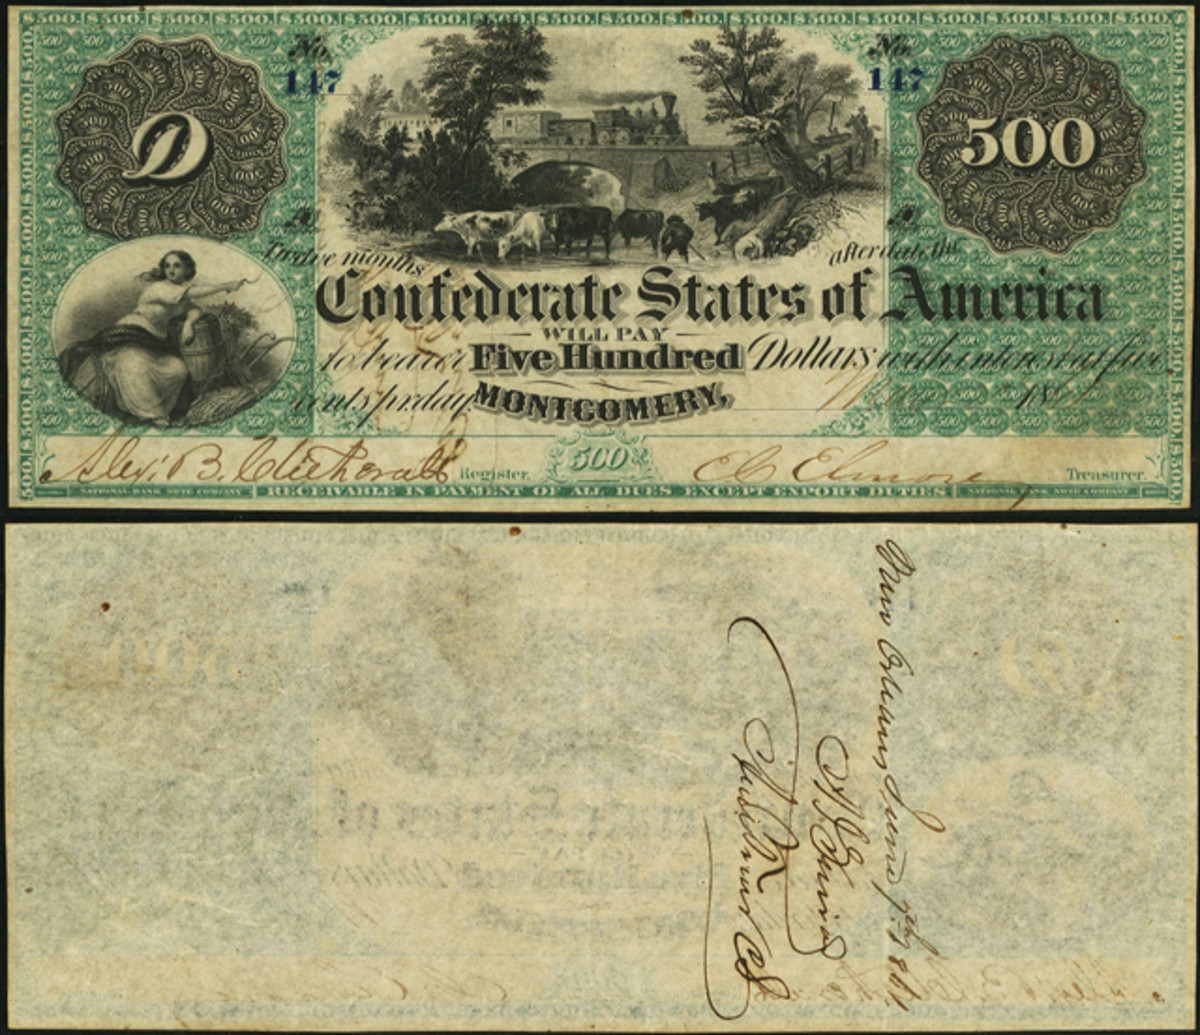 This Montgomery T2 $500 Confederate note is thought be worth $30,000+.